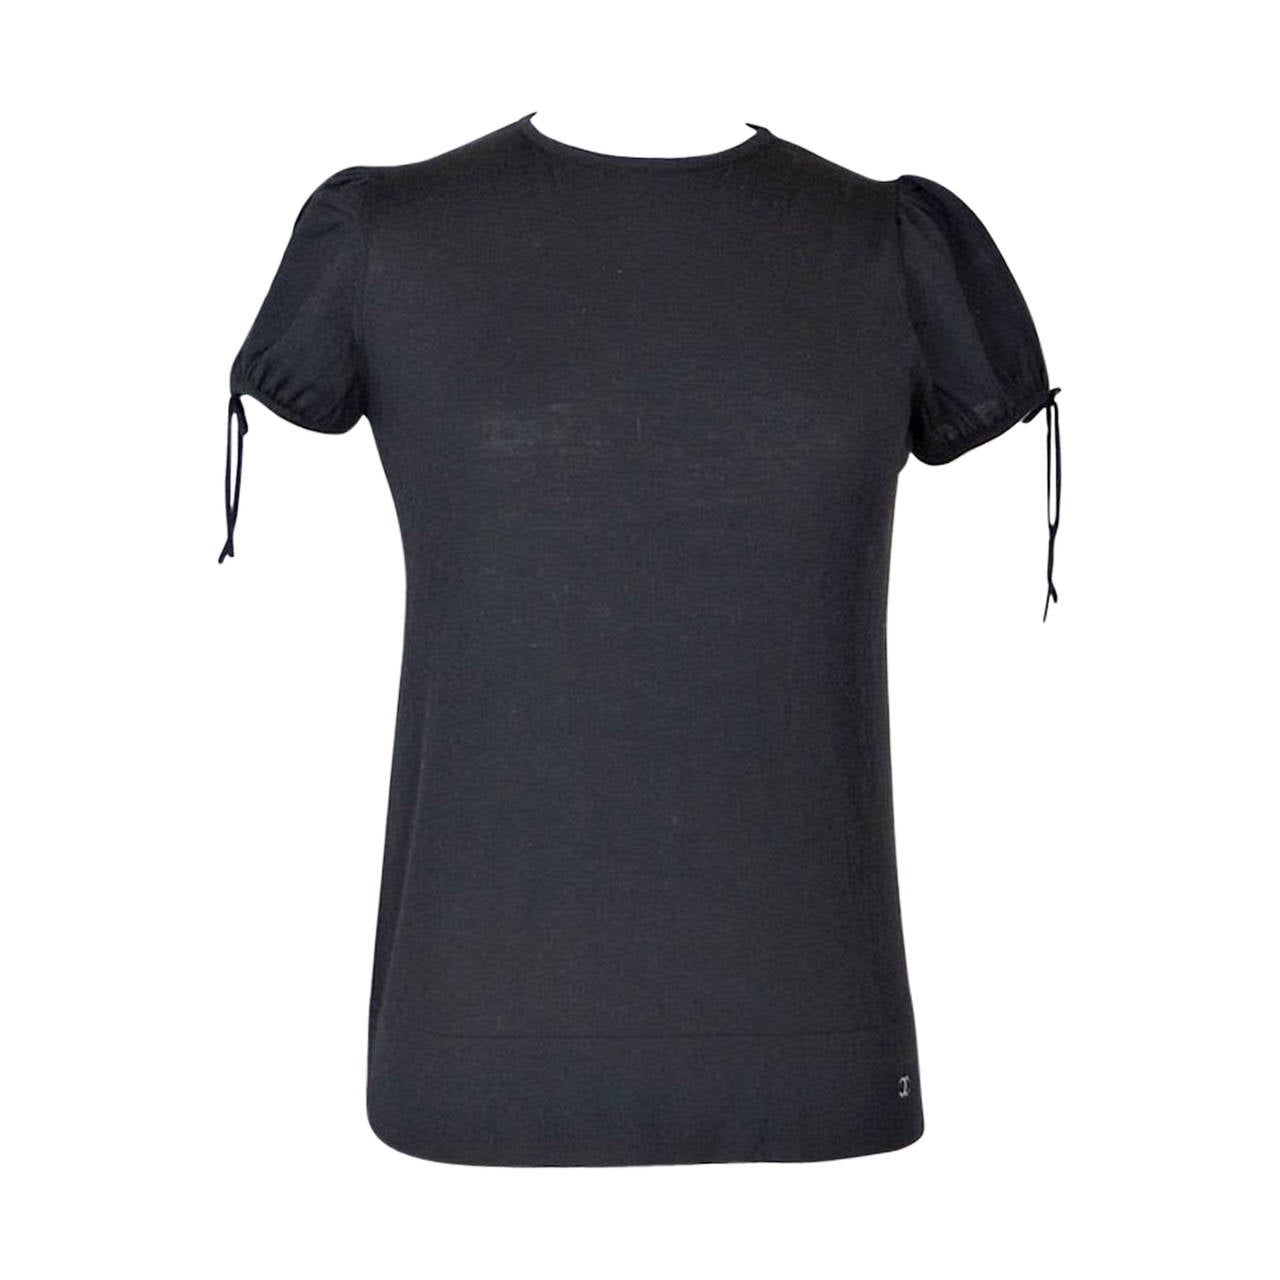 Chanel 04A Top Black Cashmere and Wool Charming Detail 42 / 8  nwt